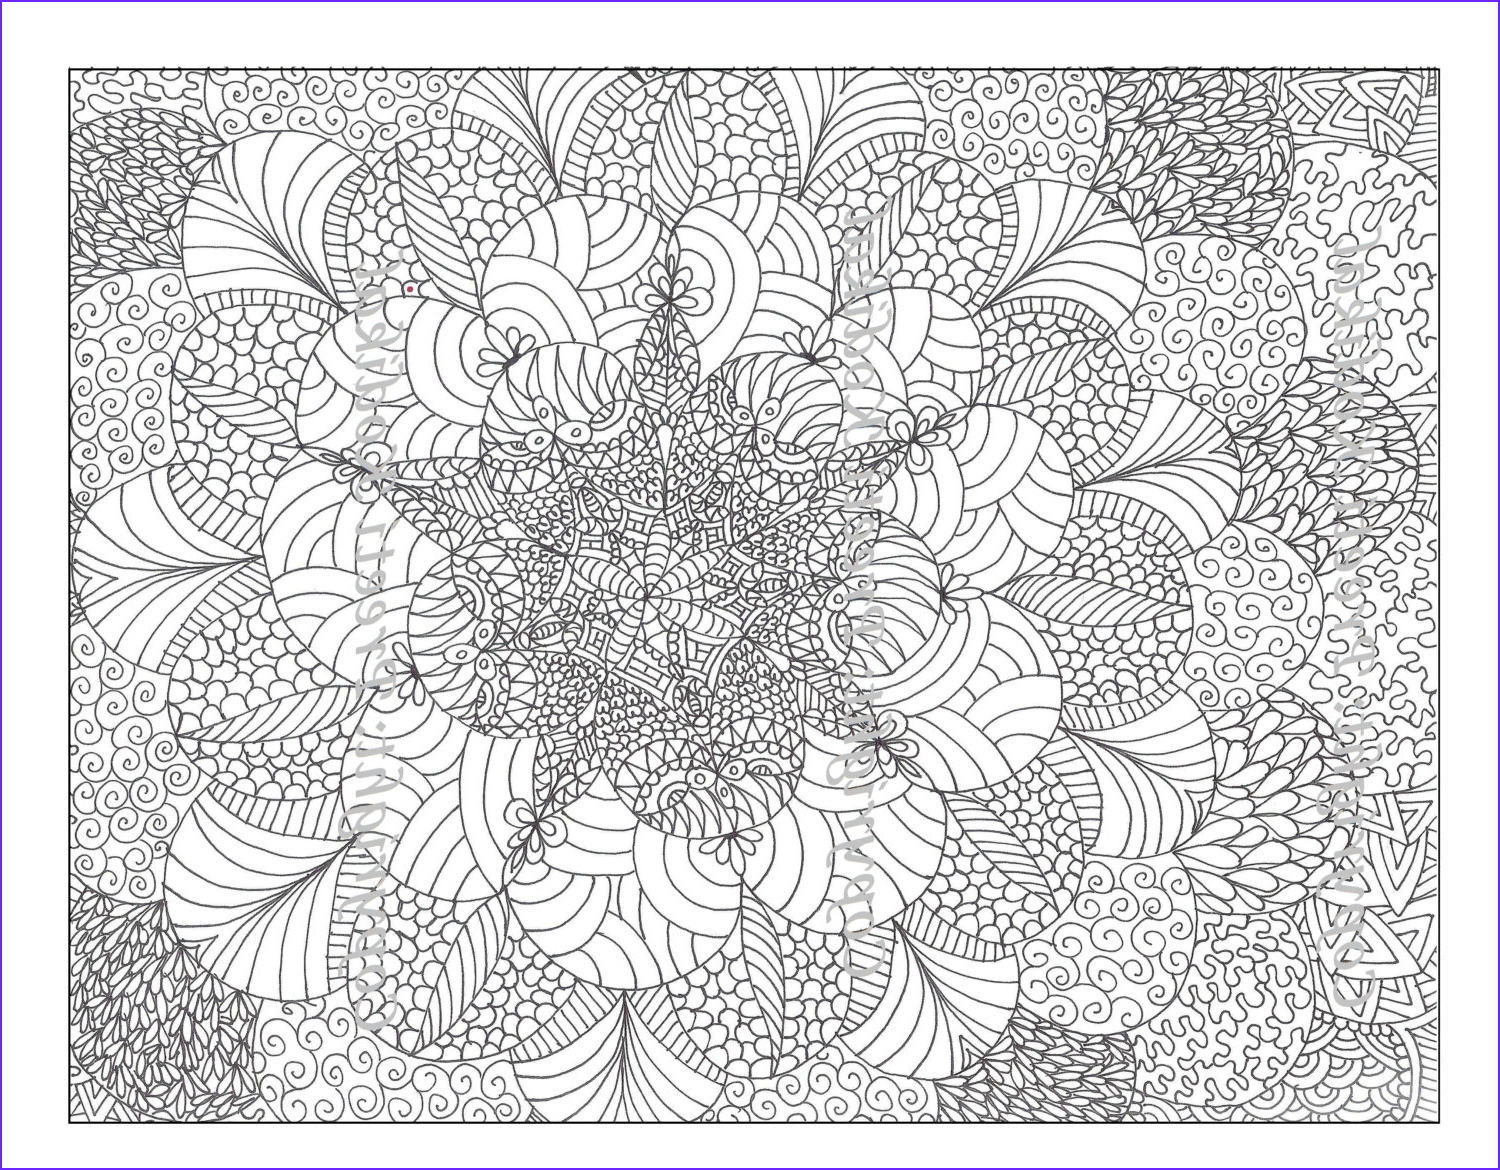 Coloring Pictures for Adults Elegant Gallery Free Printable Abstract Coloring Pages for Adults